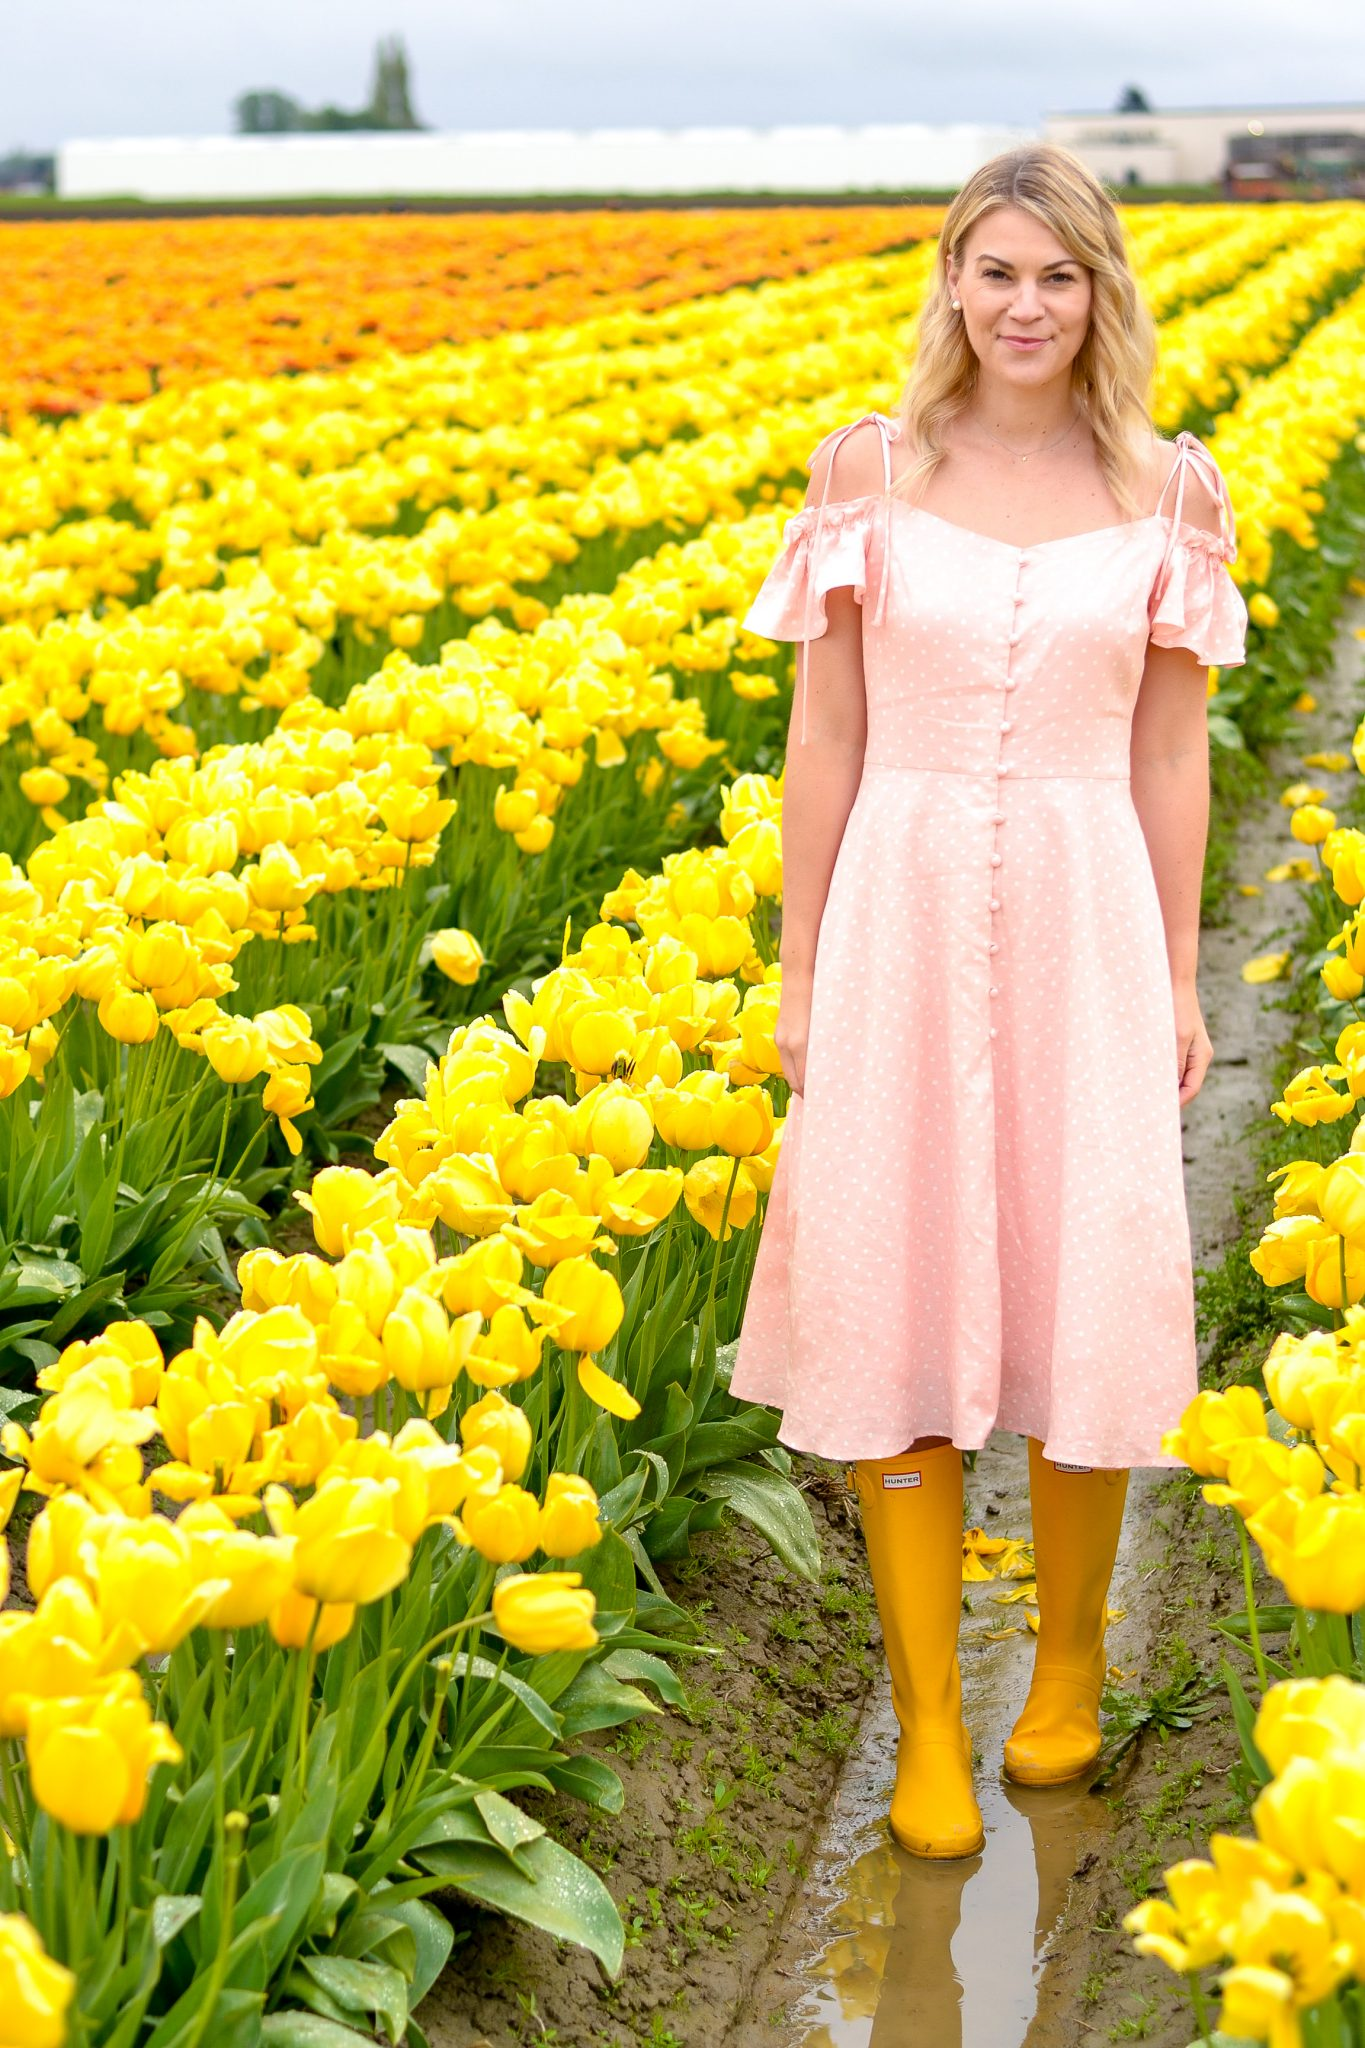 Wandering in the Tulip Fields